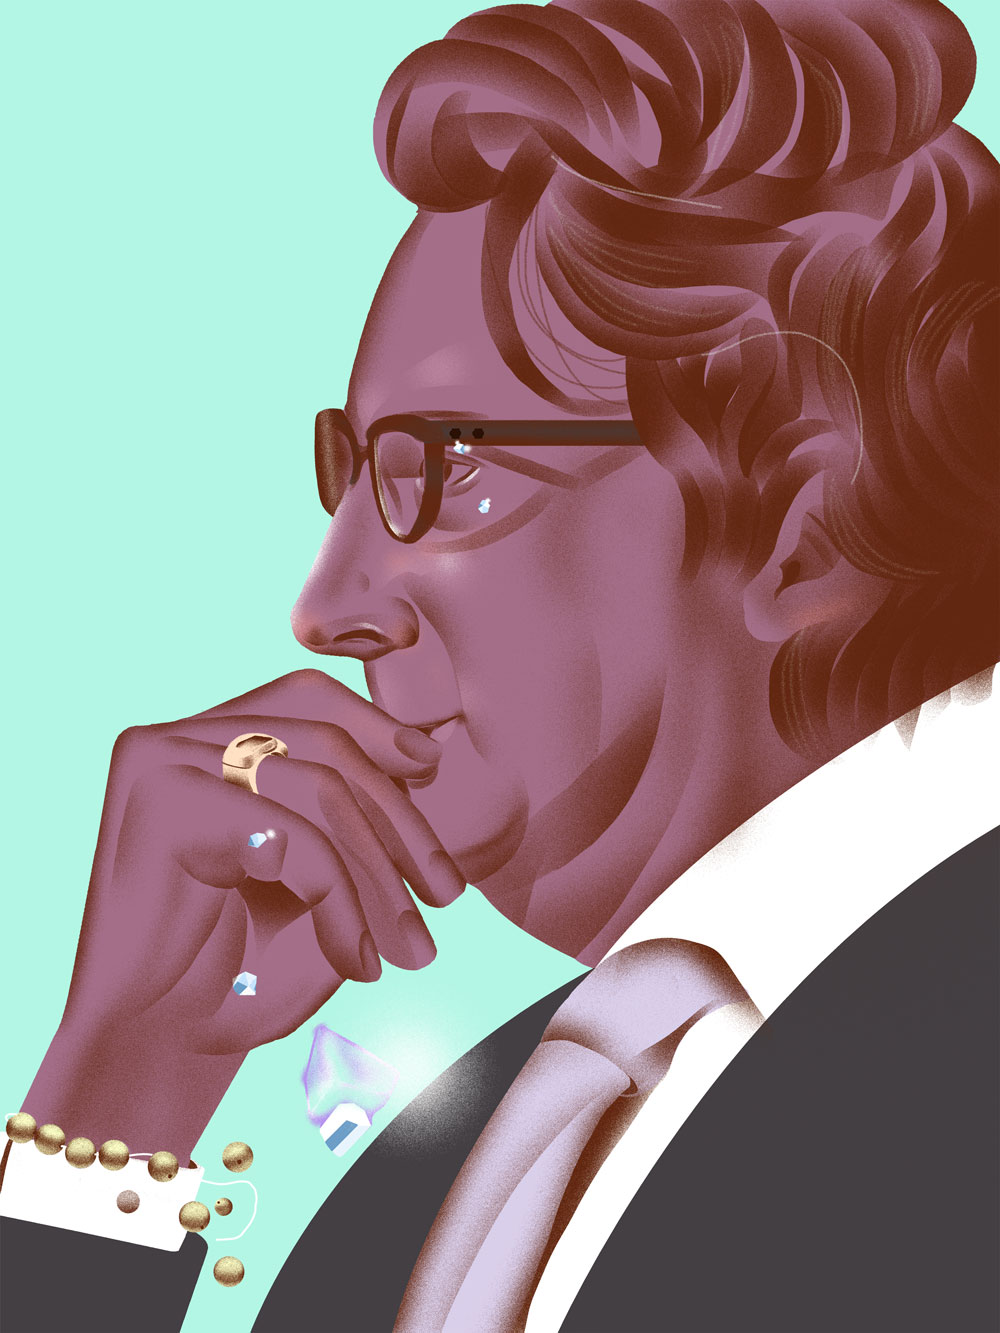 Phil Falcone (Illustration by Richard A. Chance)